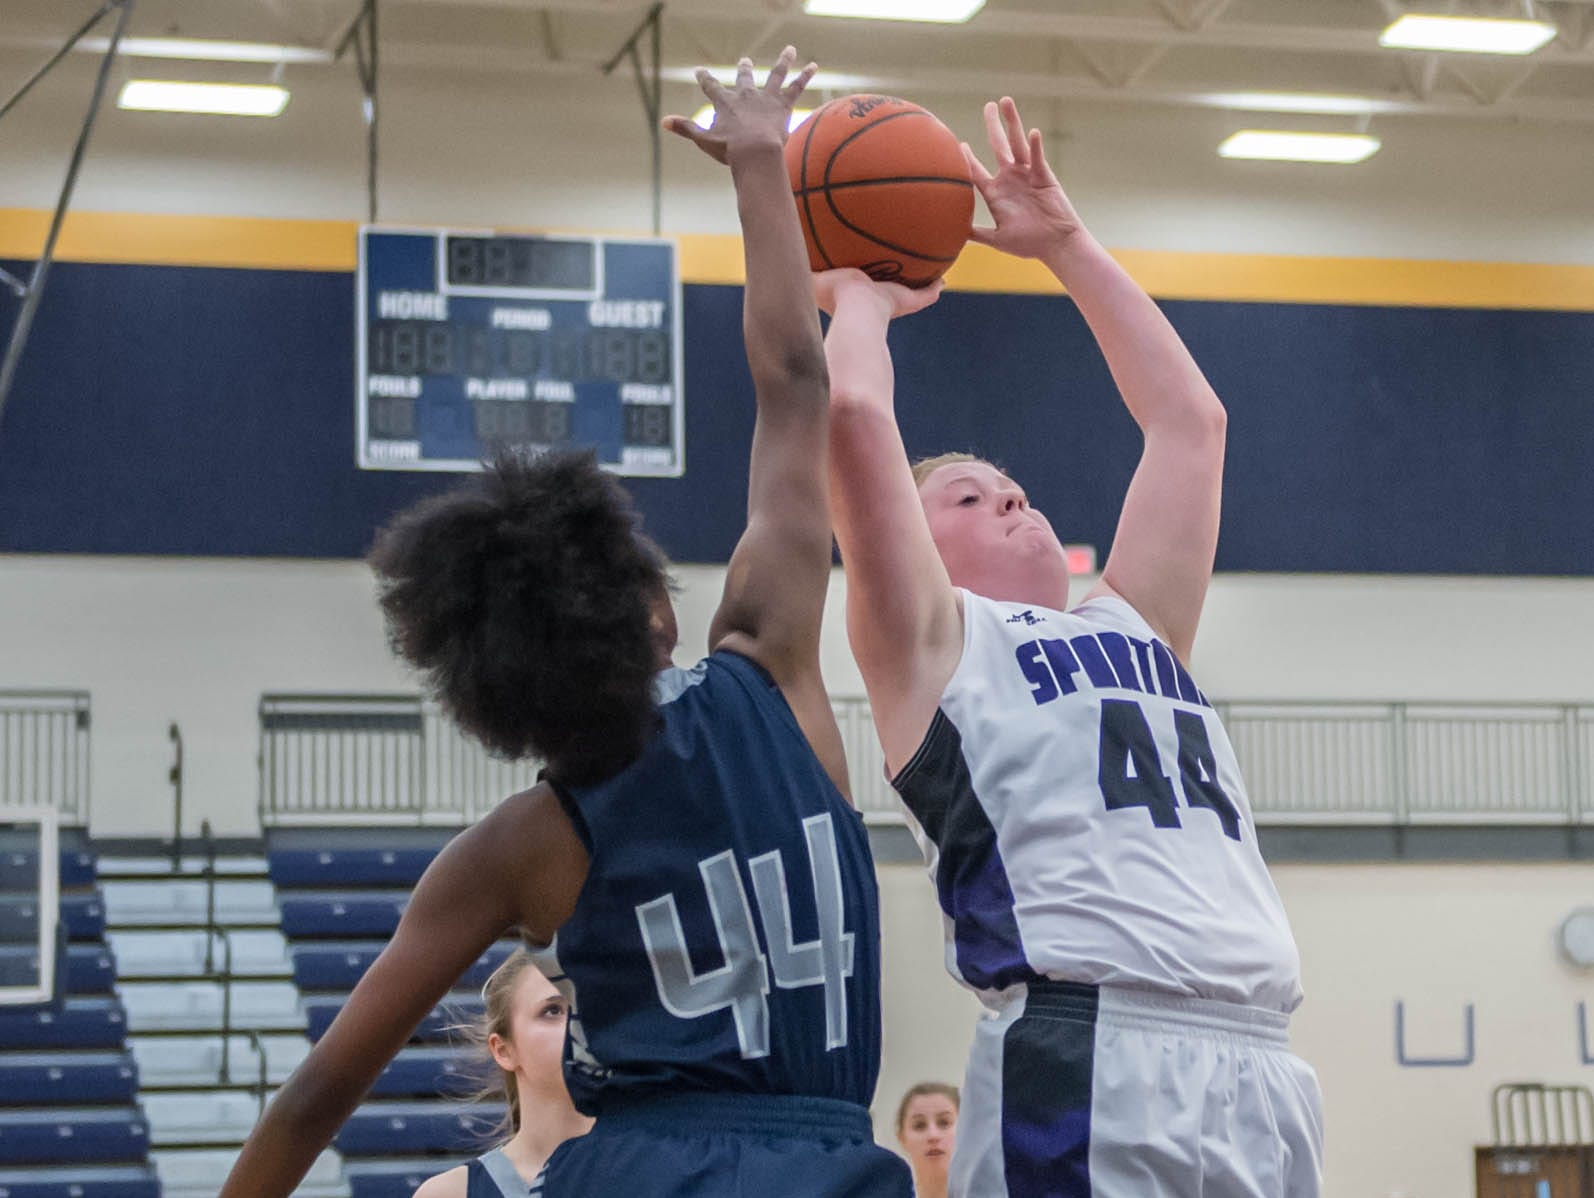 Lakeview's Emily Eldridge (44) goes to the hoop while being guarded by Gull Lake's Imani Morrow (44) Wednesday evening.